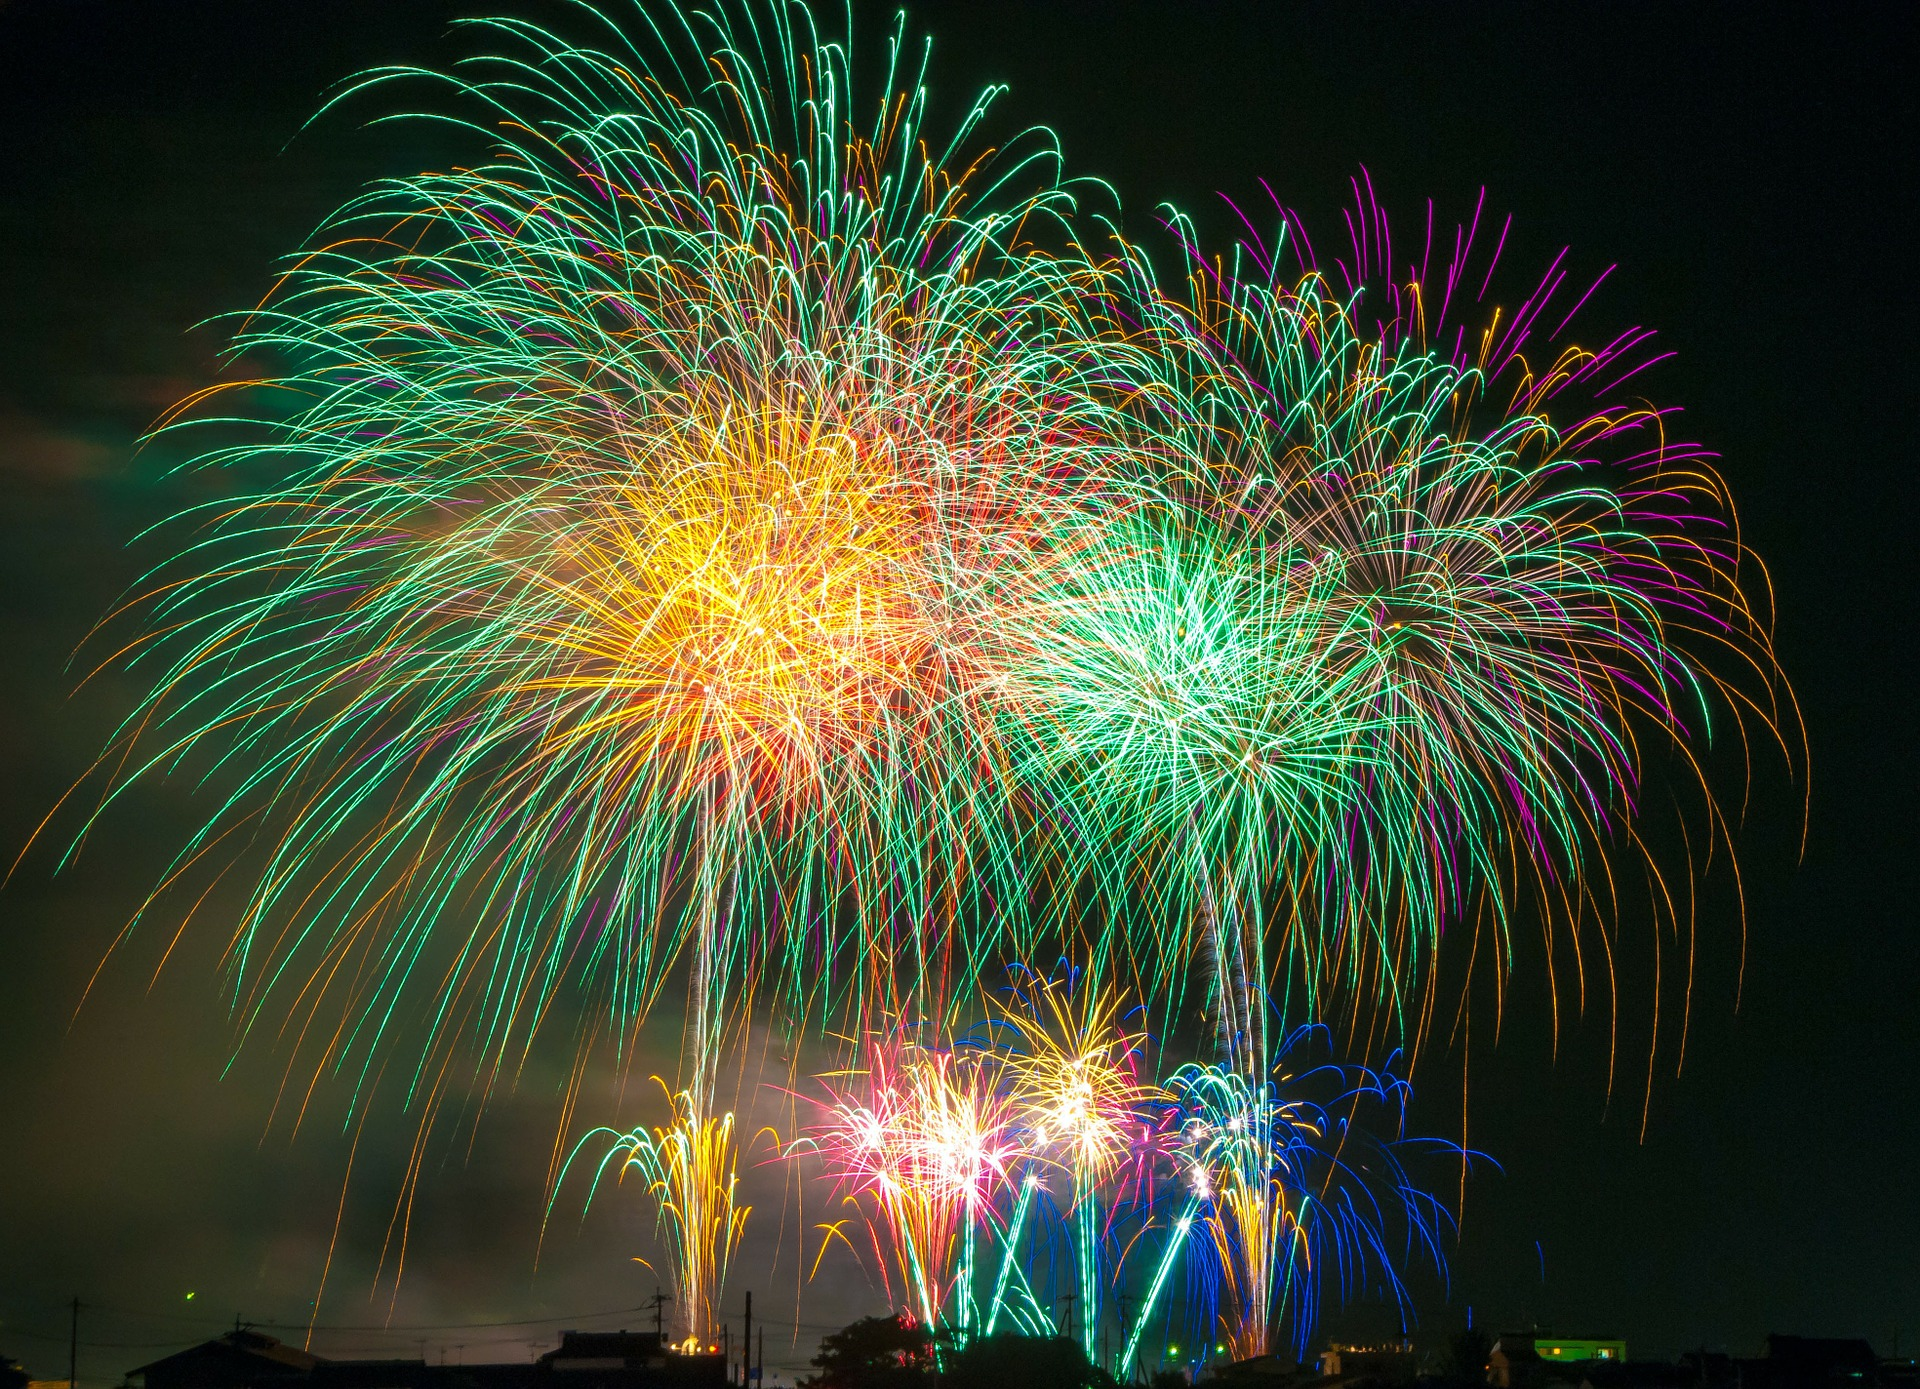 Top 3 Spots to Watch Fireworks in Casper